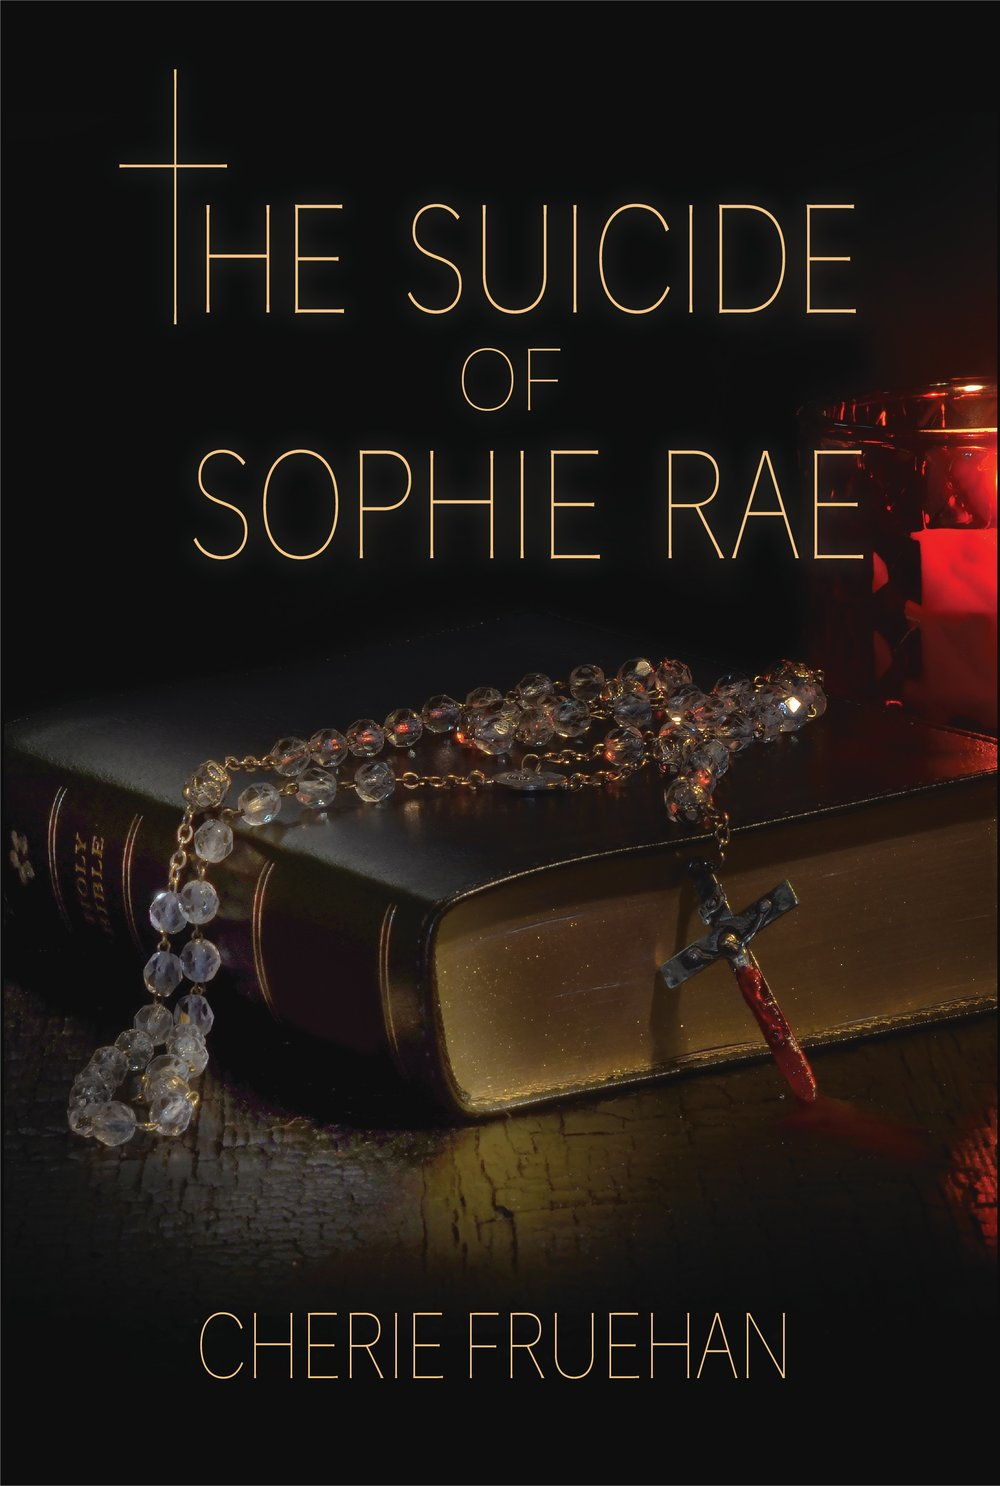 THE SUICIDE OF SOPHIE RAE by Cherie Fruehan